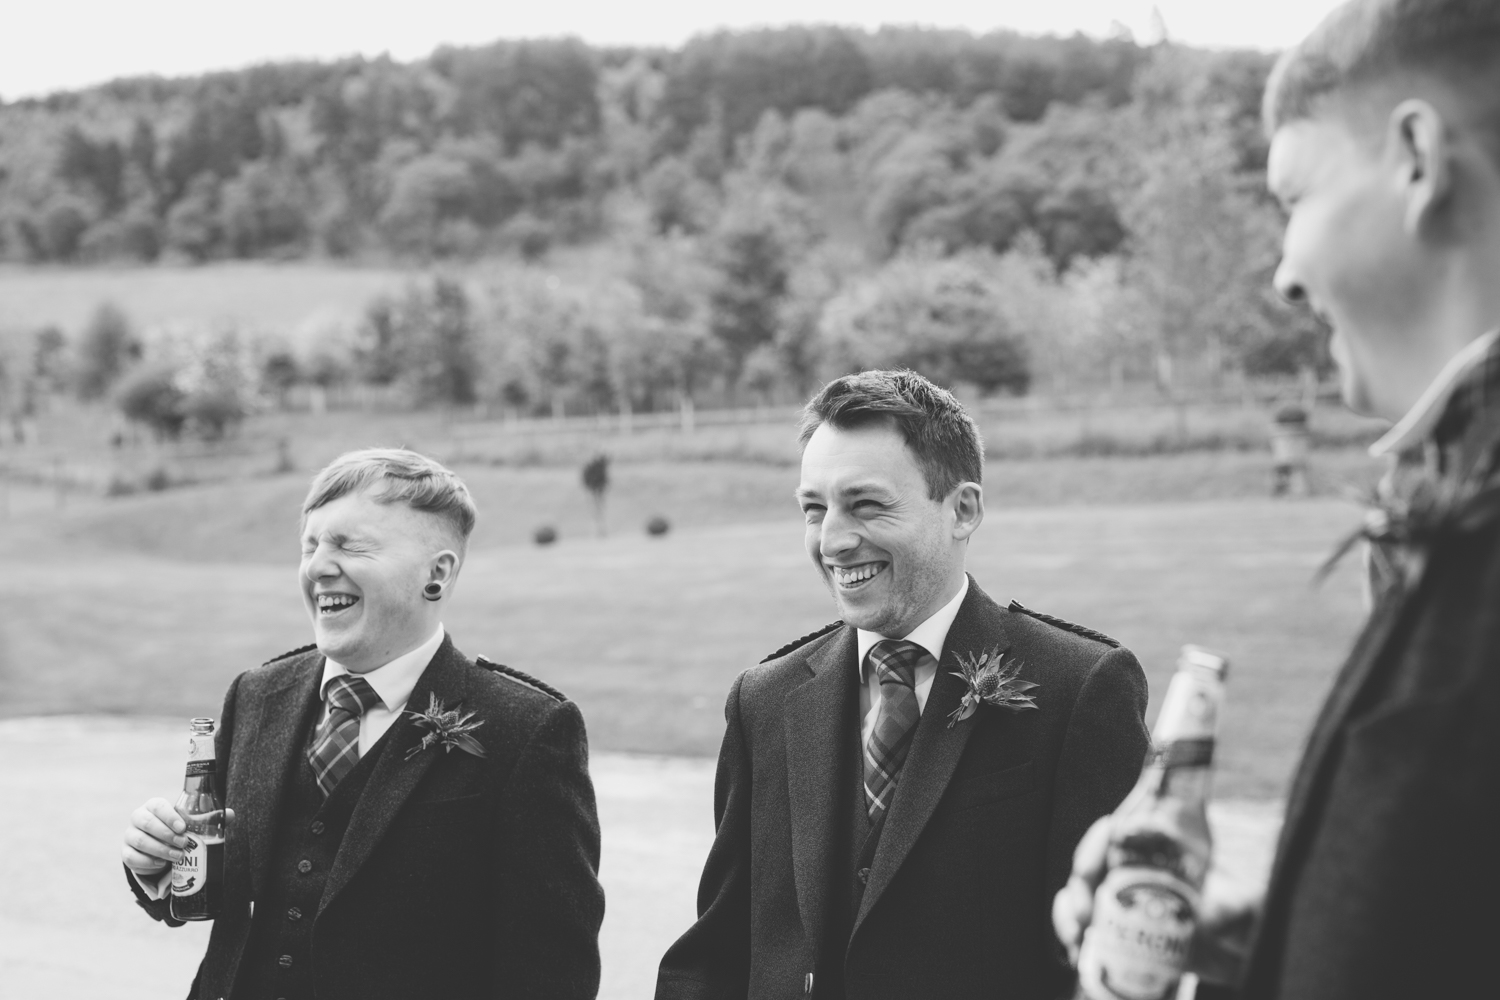 weddings at aswanley, aswanley wedding, wedding photographer aswanley, aswanley, glass, huntly, aberdeenshire wedding venue, wedding venue in Aberdeenshire, barn wedding venue Scotland, diy wedding venue Scotland, diy wedding venue aberdeen, Vivienne Elizabeth Photography